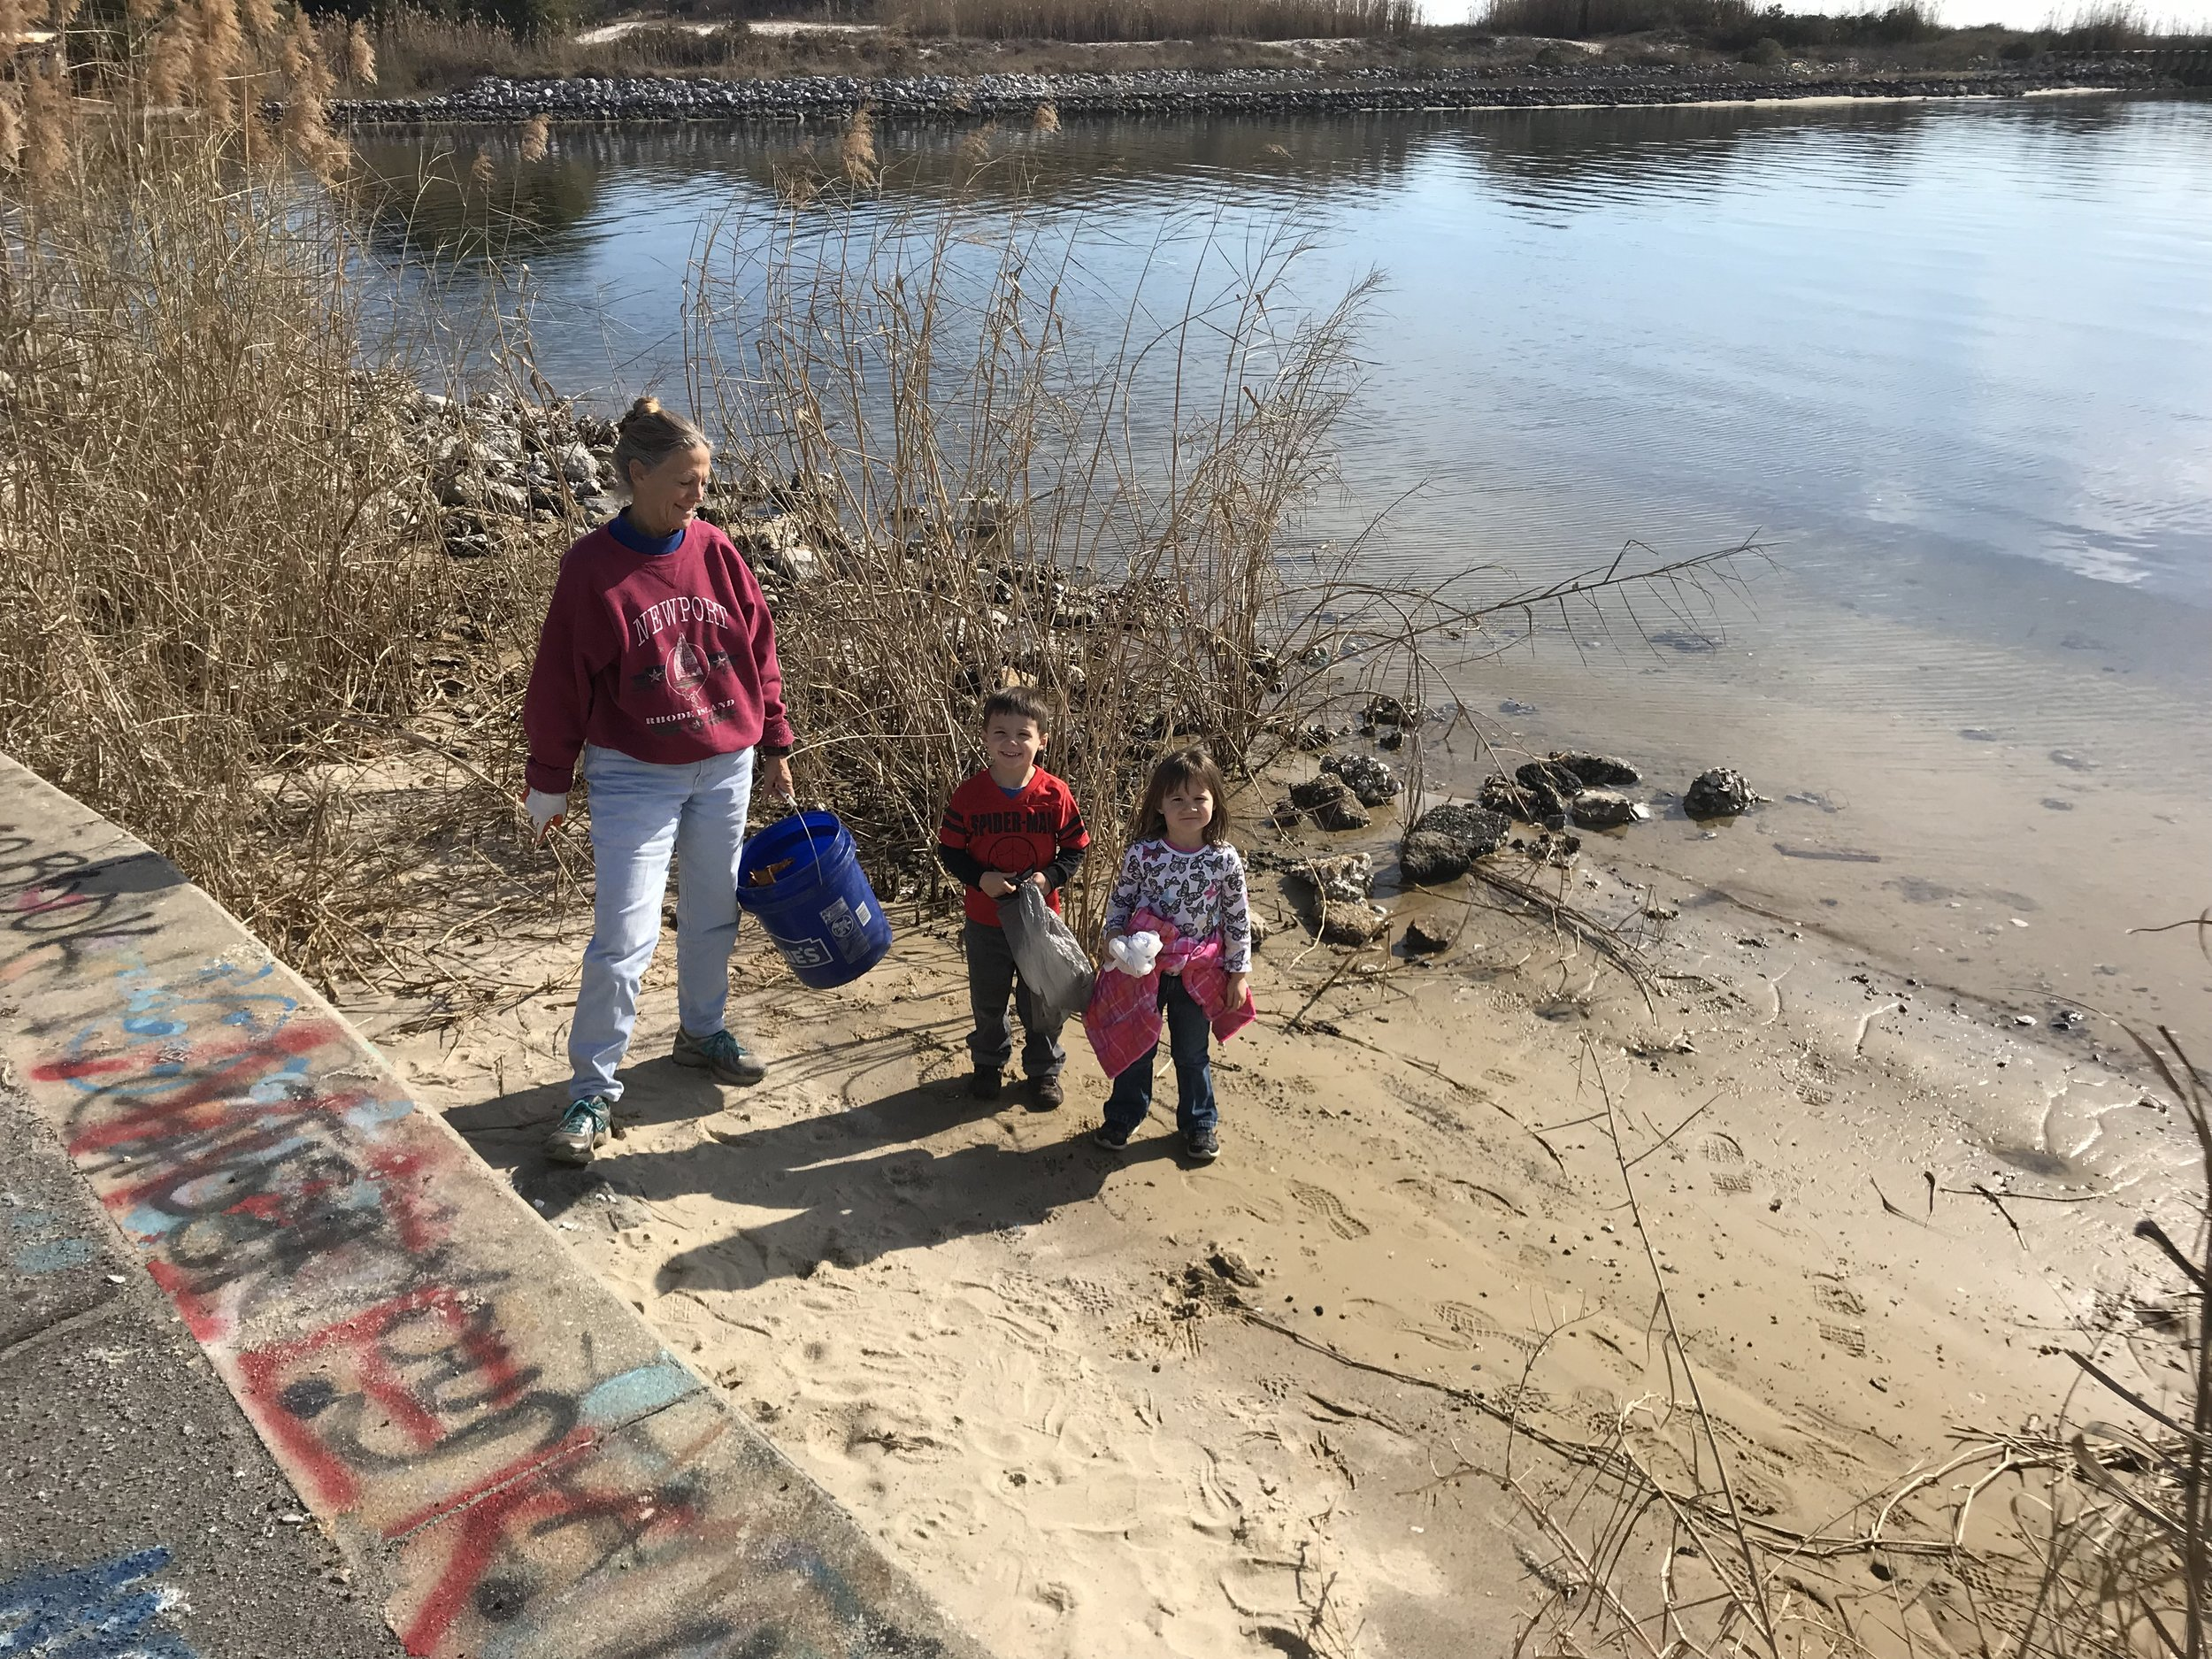 - ALL 37 volunteers contributed to collecting 157 lbs of trash.The